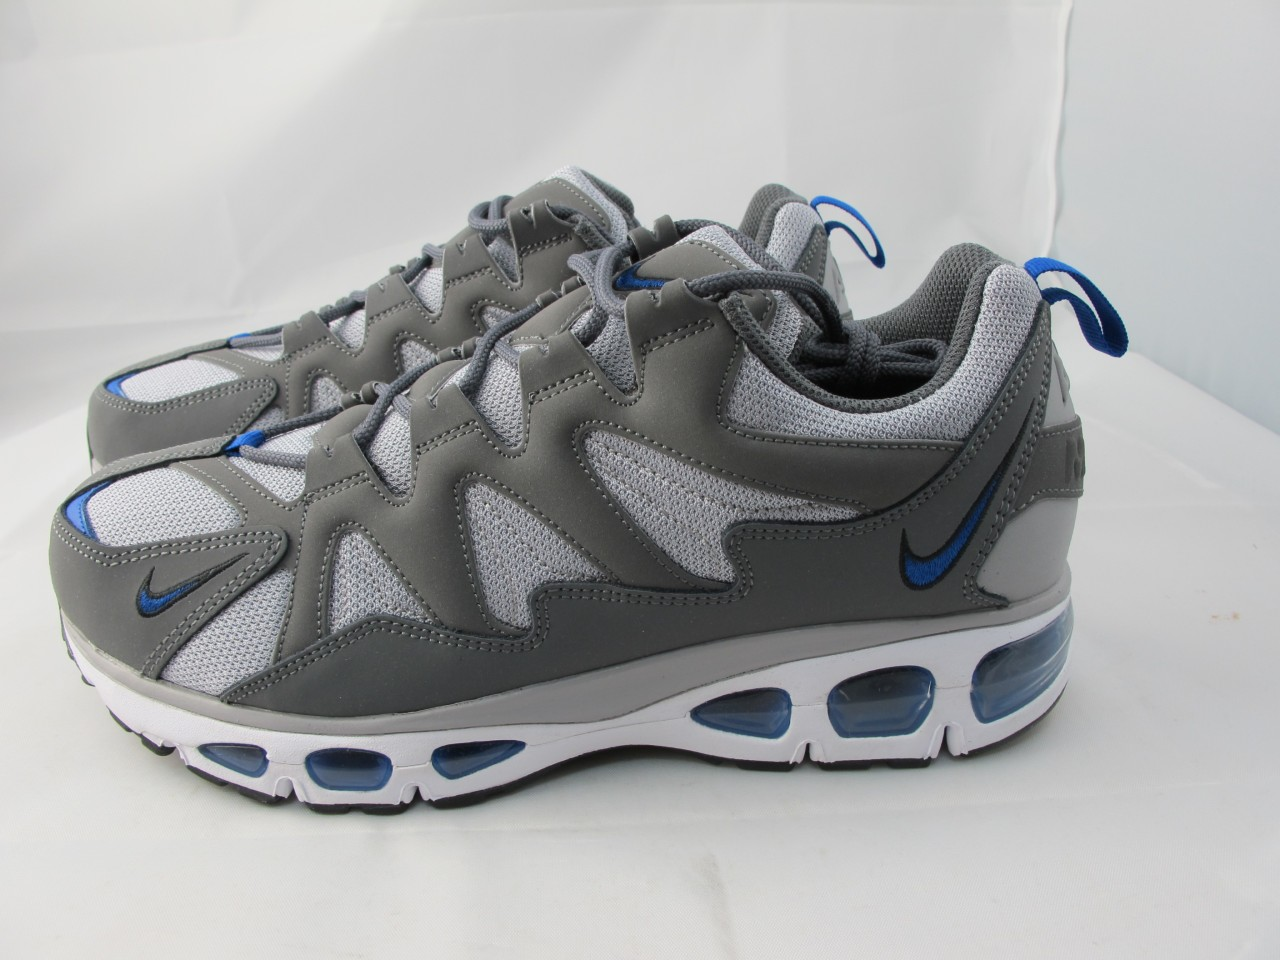 detailed look 97769 7d5d9 Air Max Tailwind 96 12 Nike Air Max Atomic Thea Blue And ...